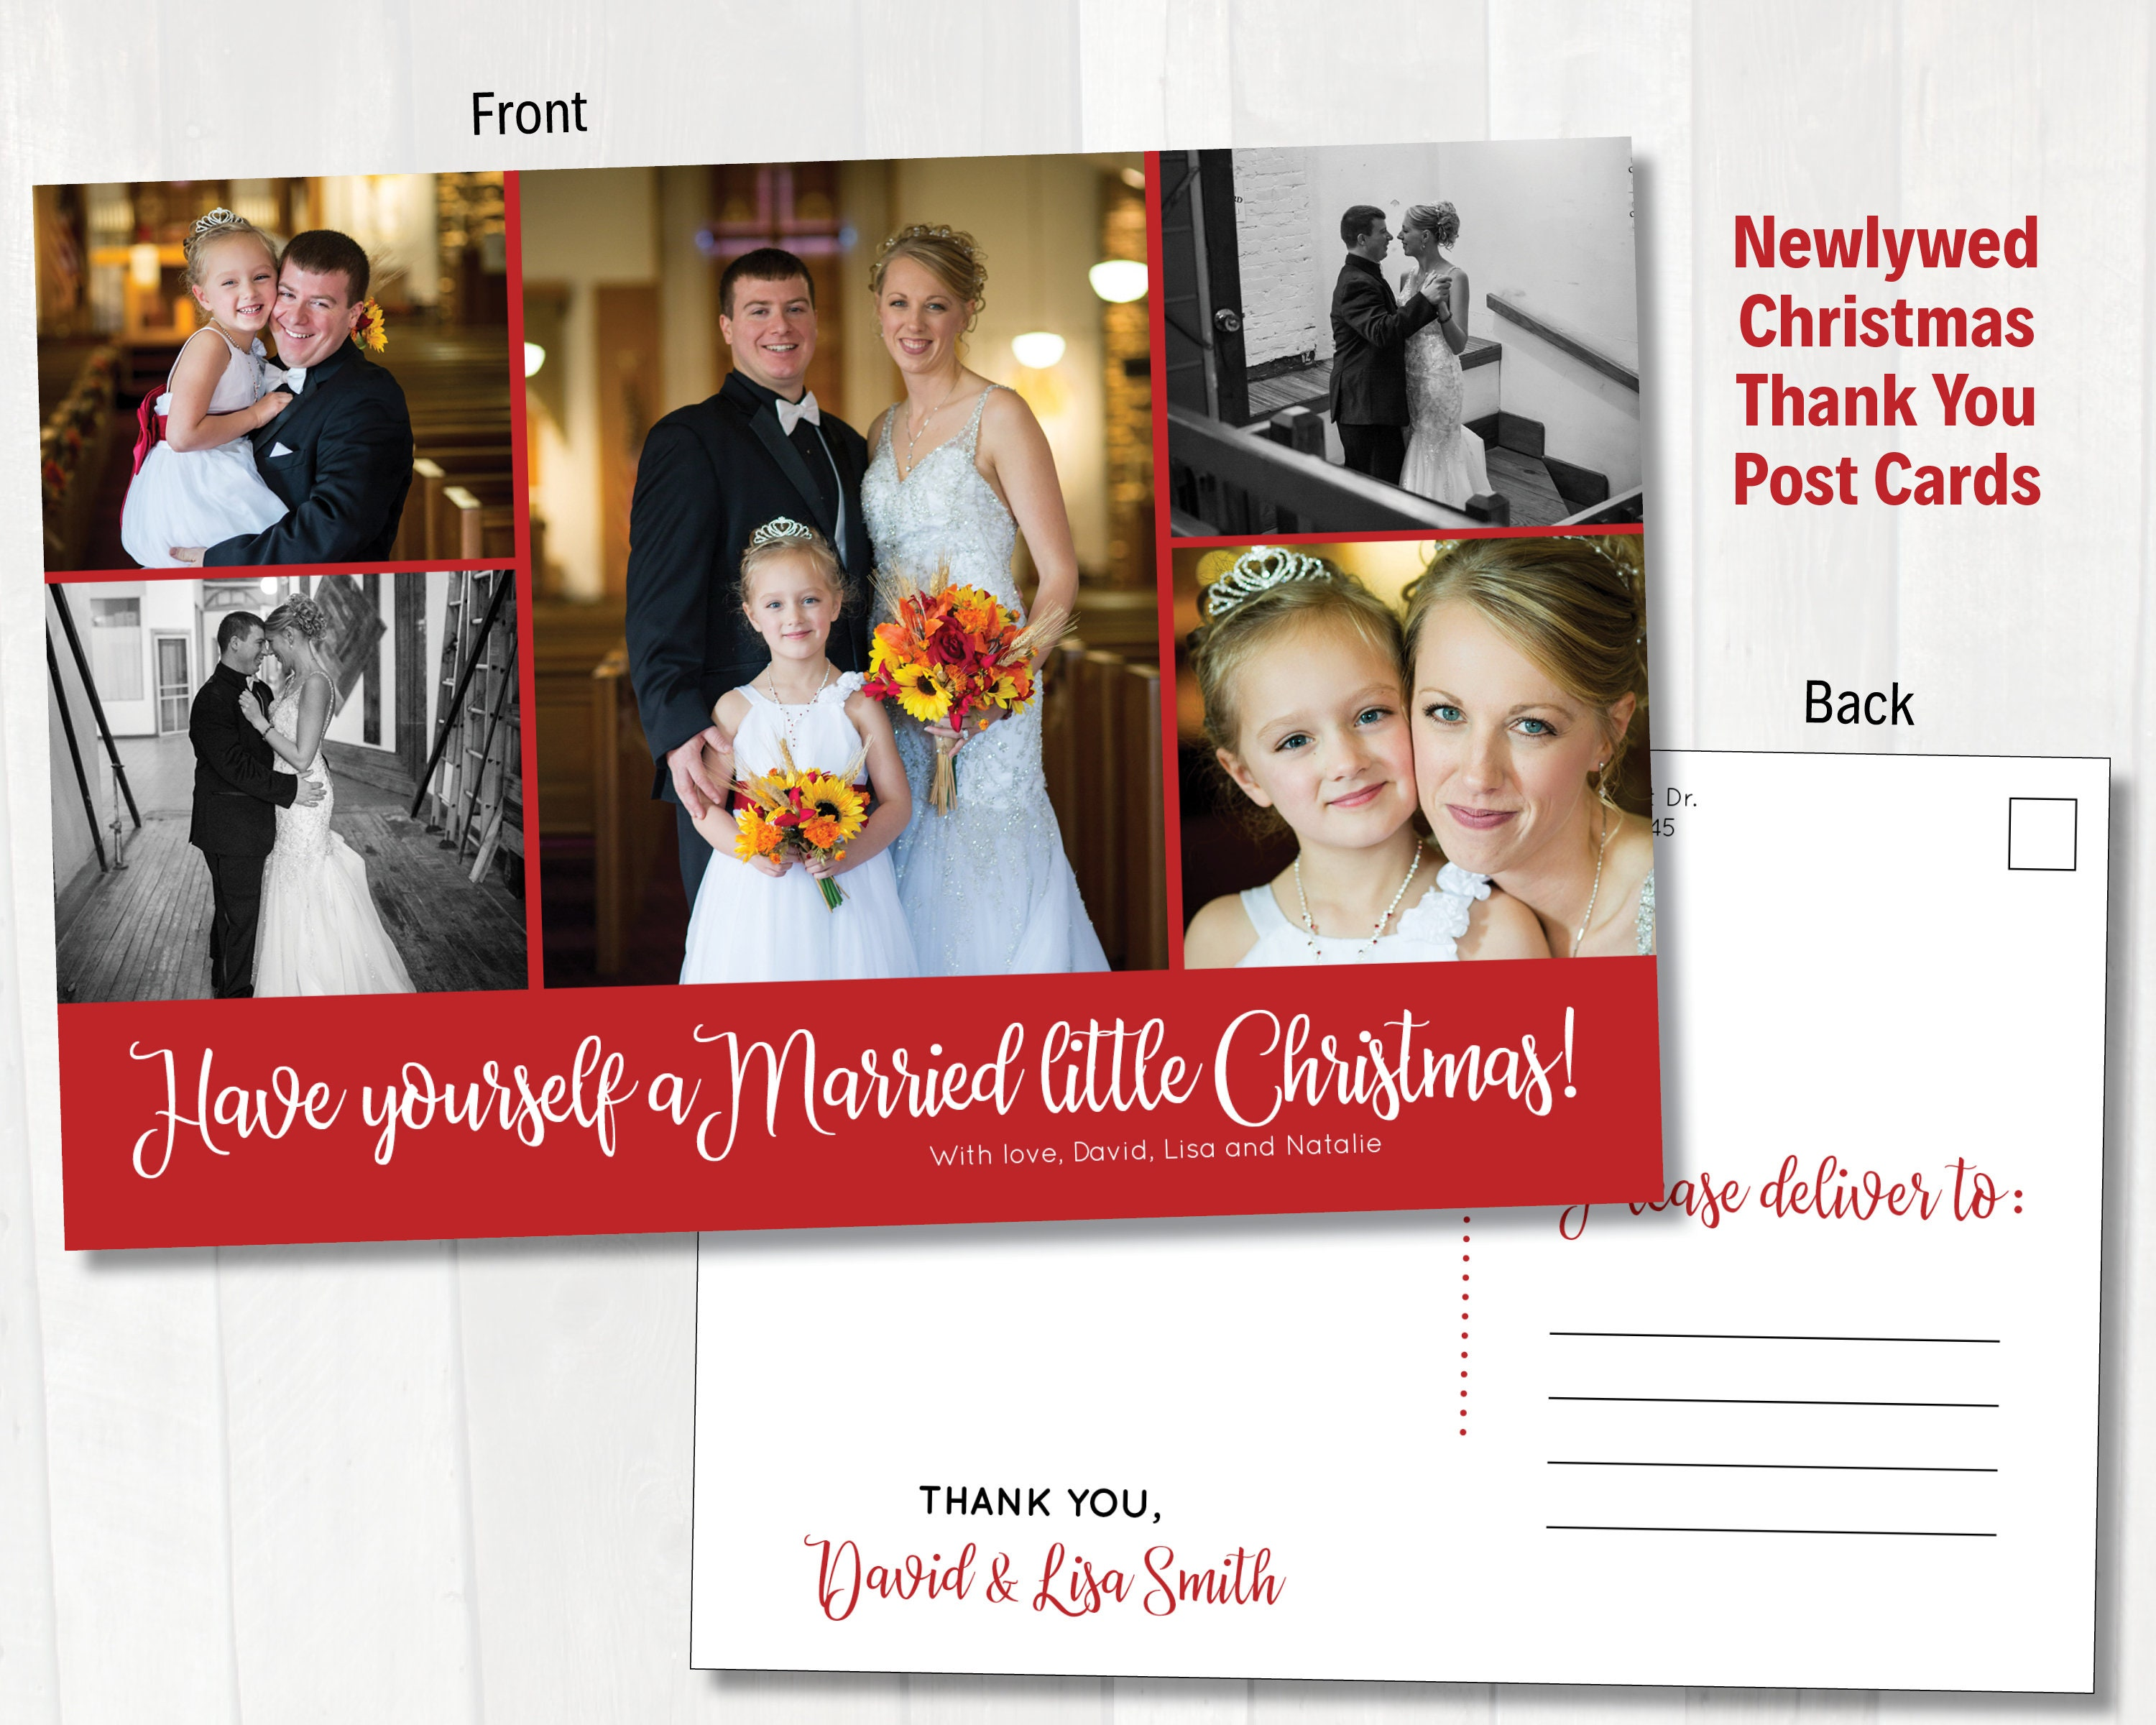 Newlywed Christmas Thank You Post Cards Just Married holiday | Etsy